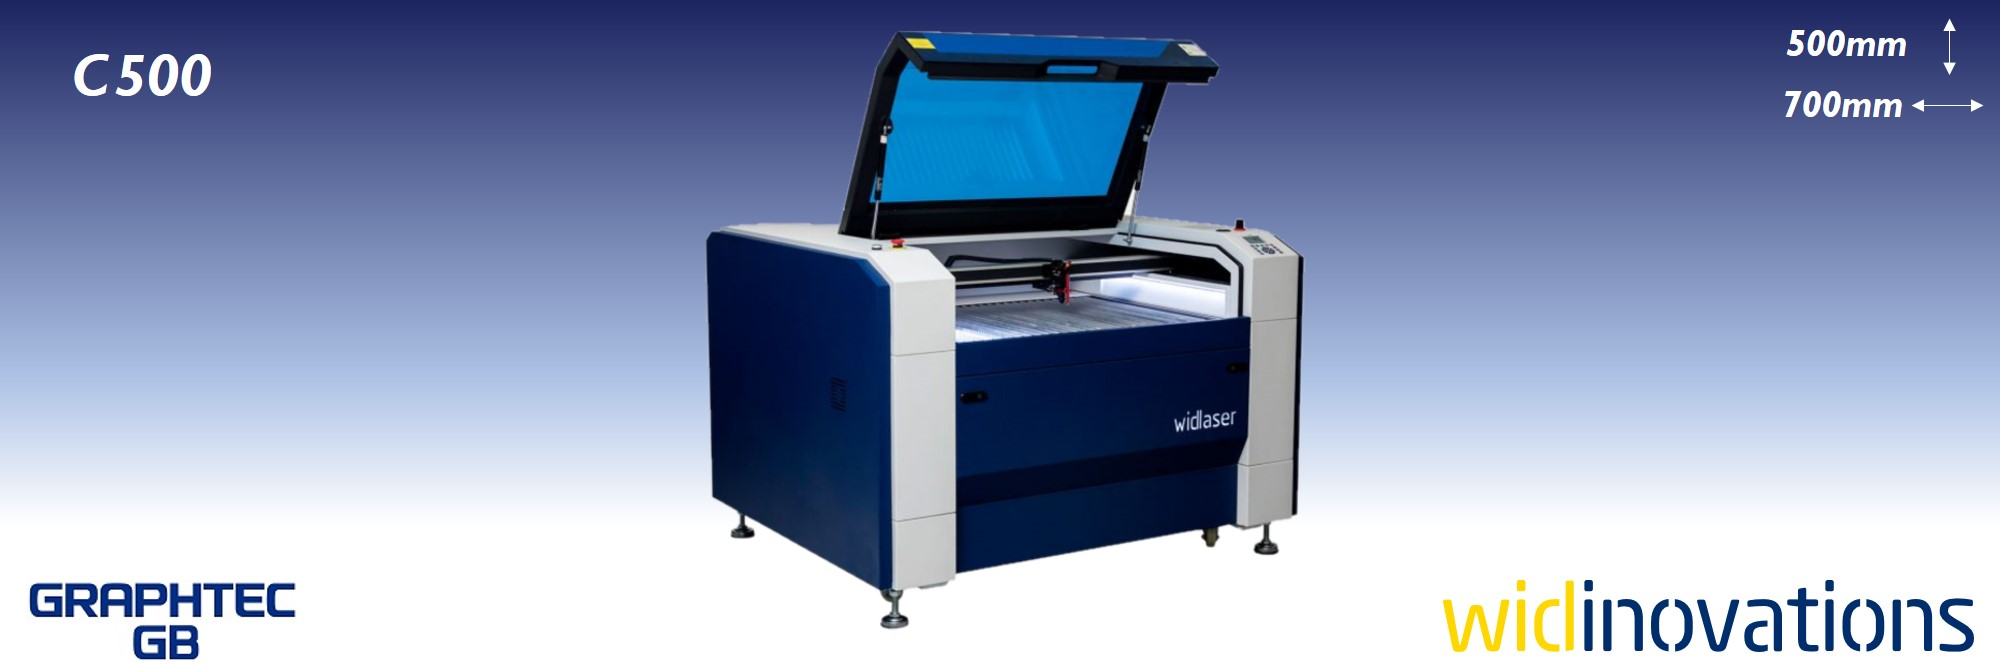 wid inovations - widlaser c500 - banner